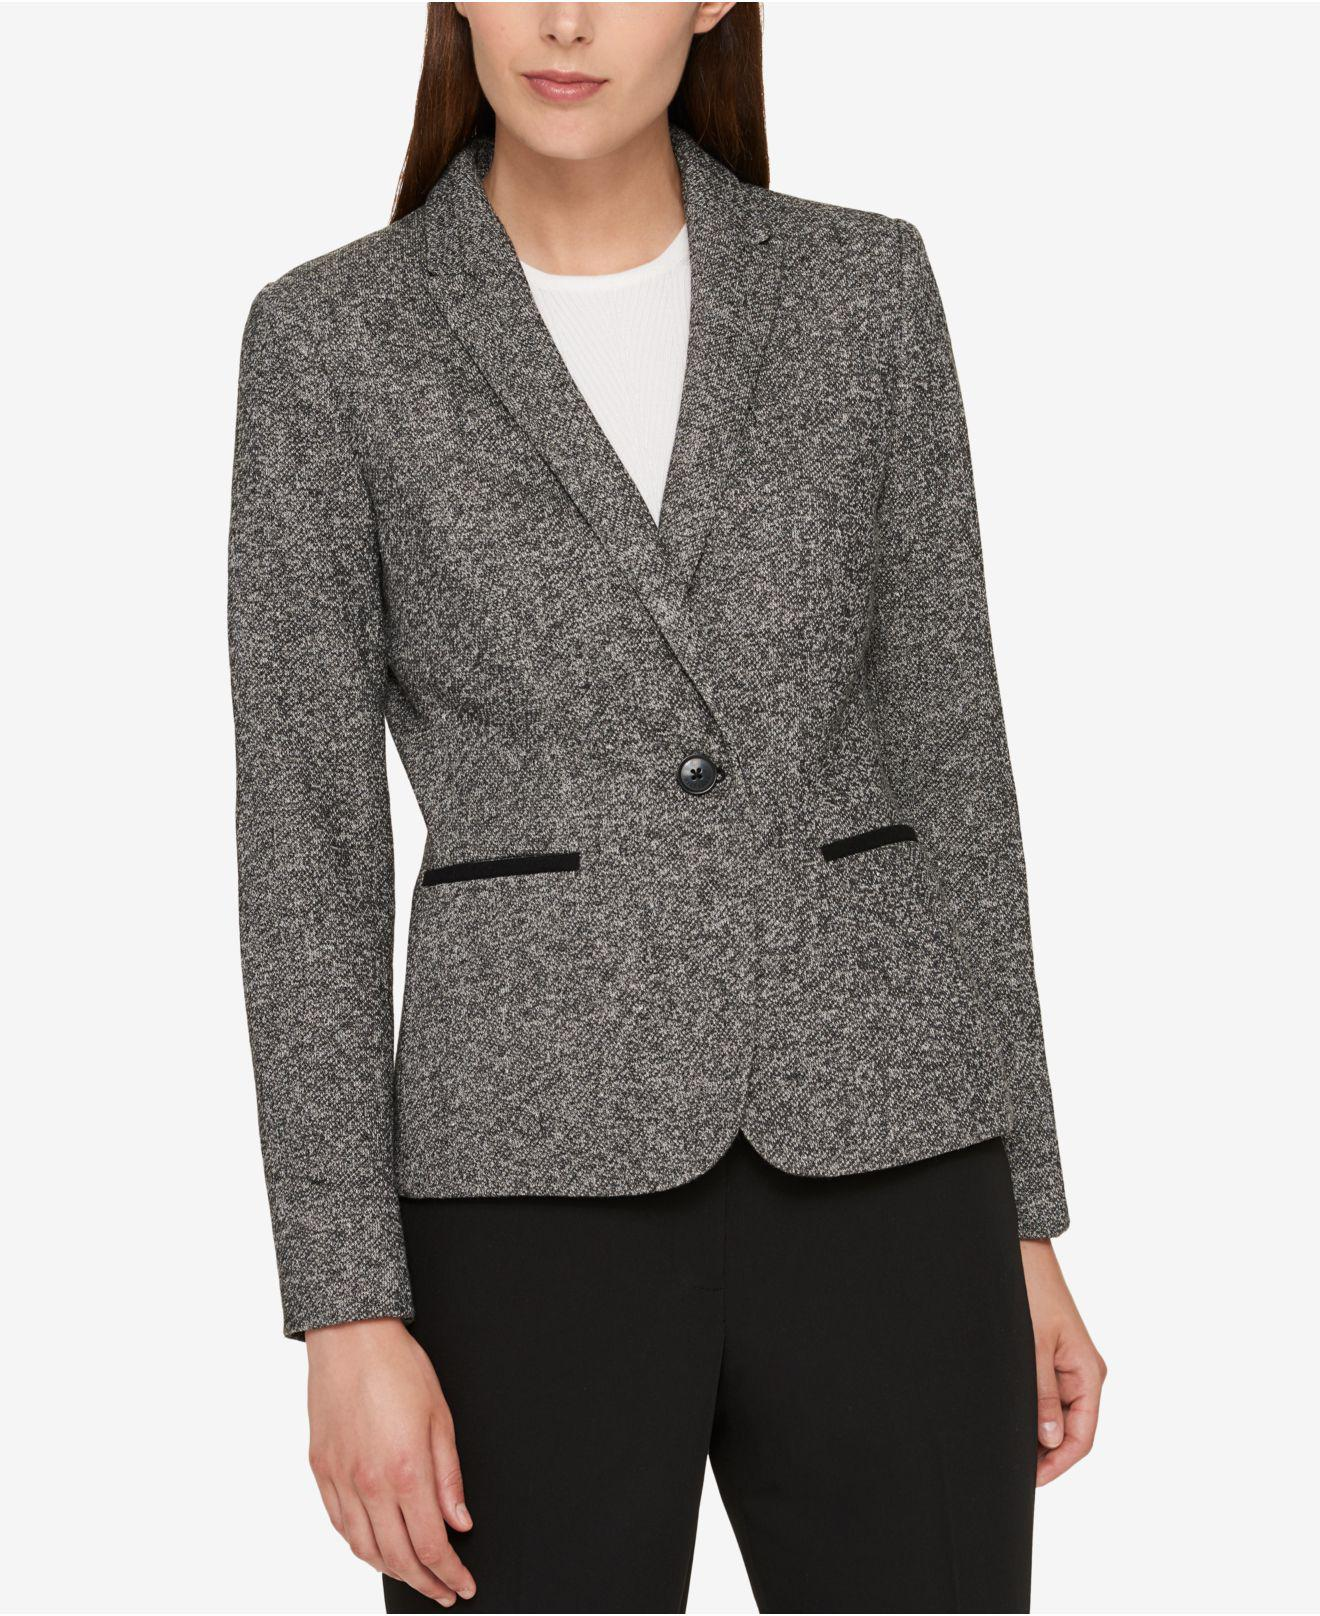 b00539765e4f4 Tommy Hilfiger One-button Elbow-patch Blazer in Gray - Lyst